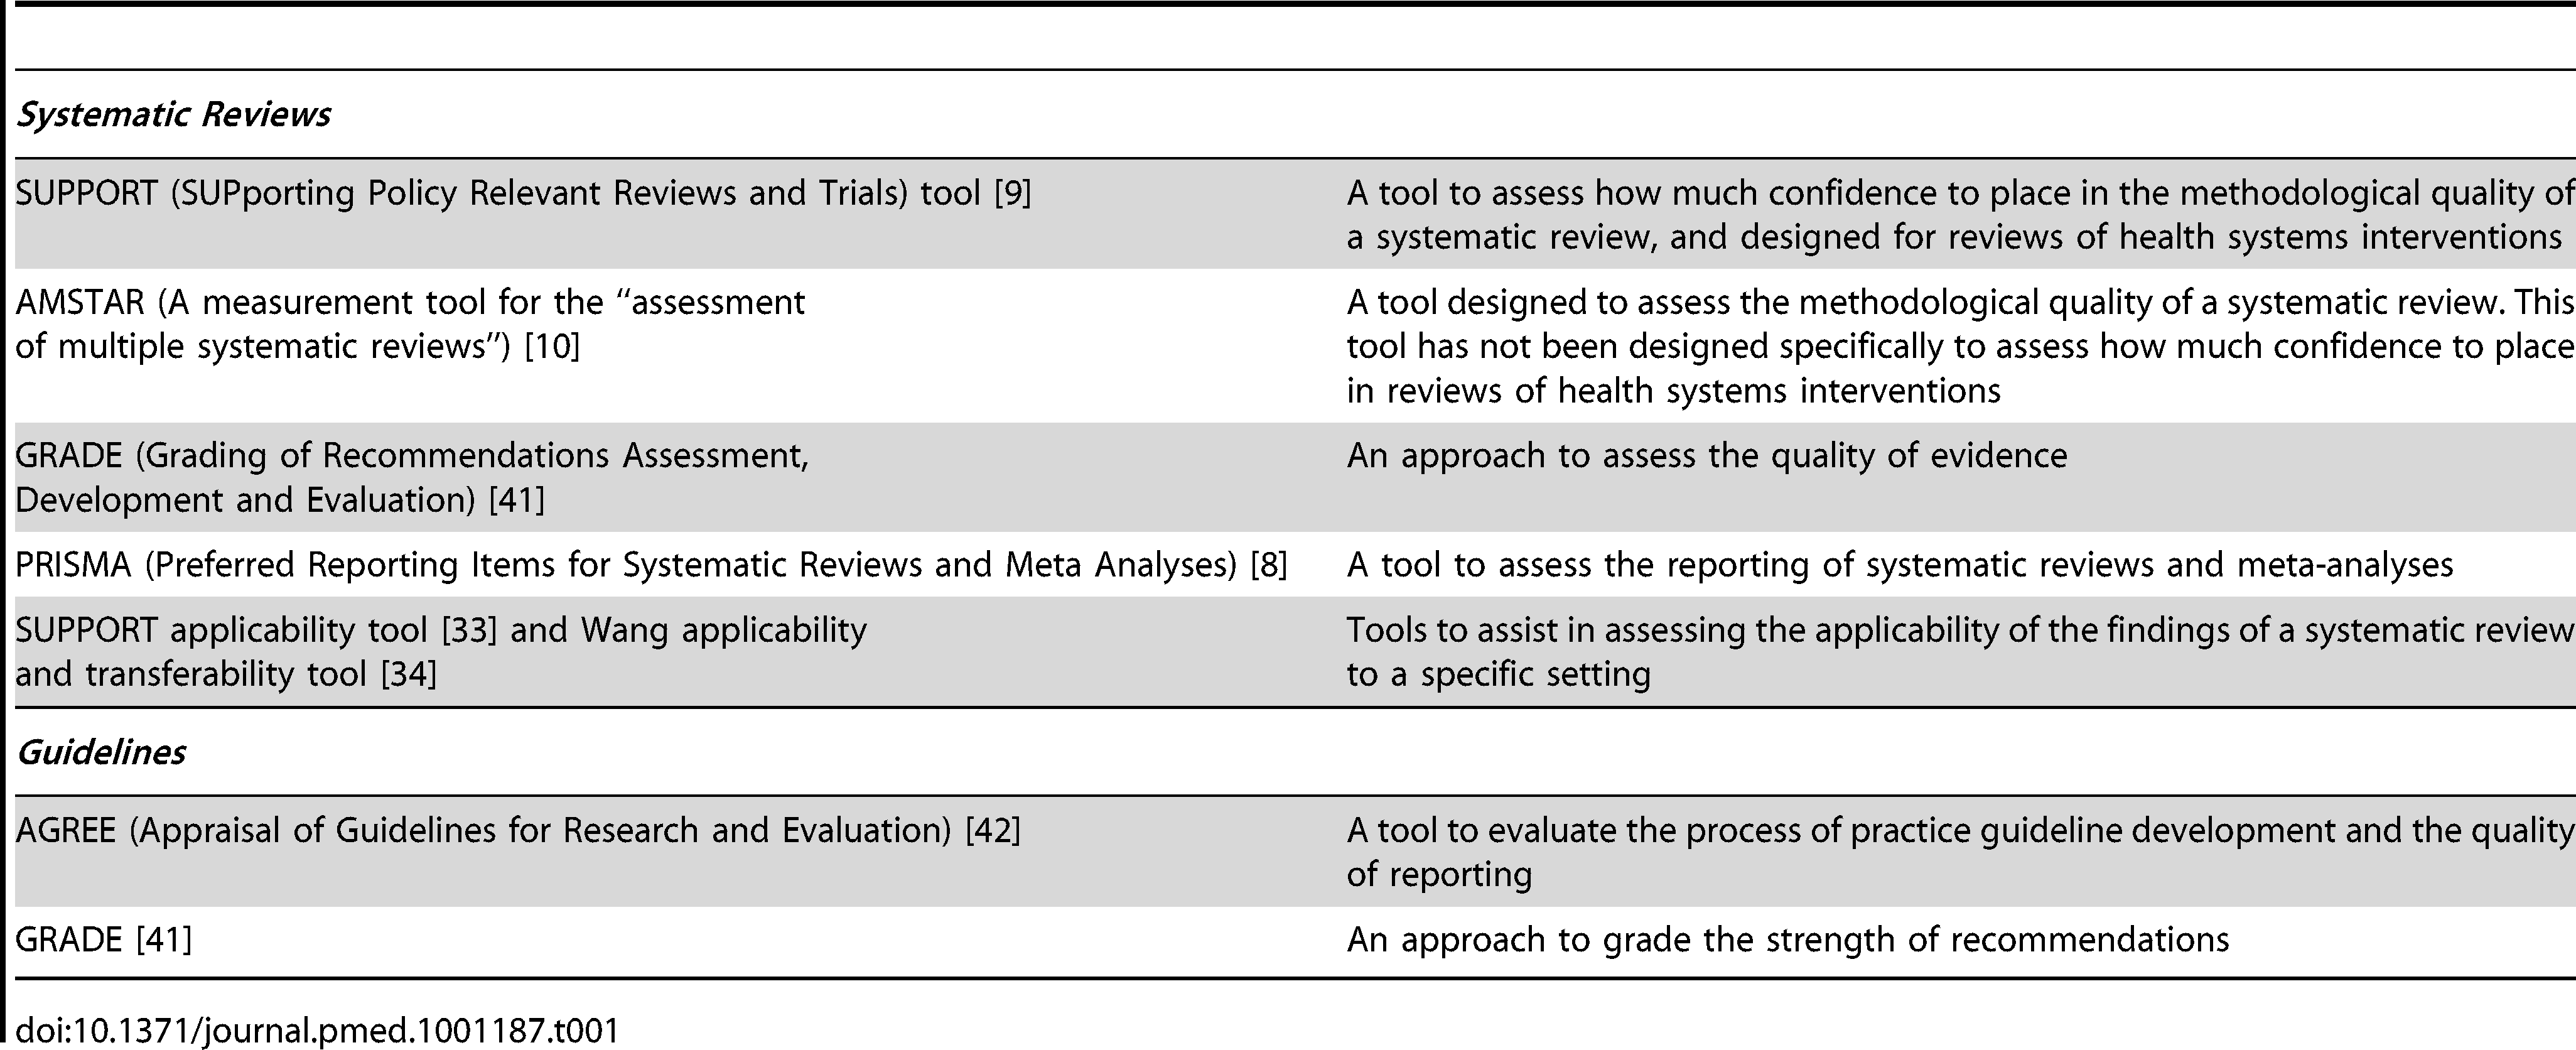 Commonly used tools to assess systematic reviews and their findings and to assess clinical guidelines.